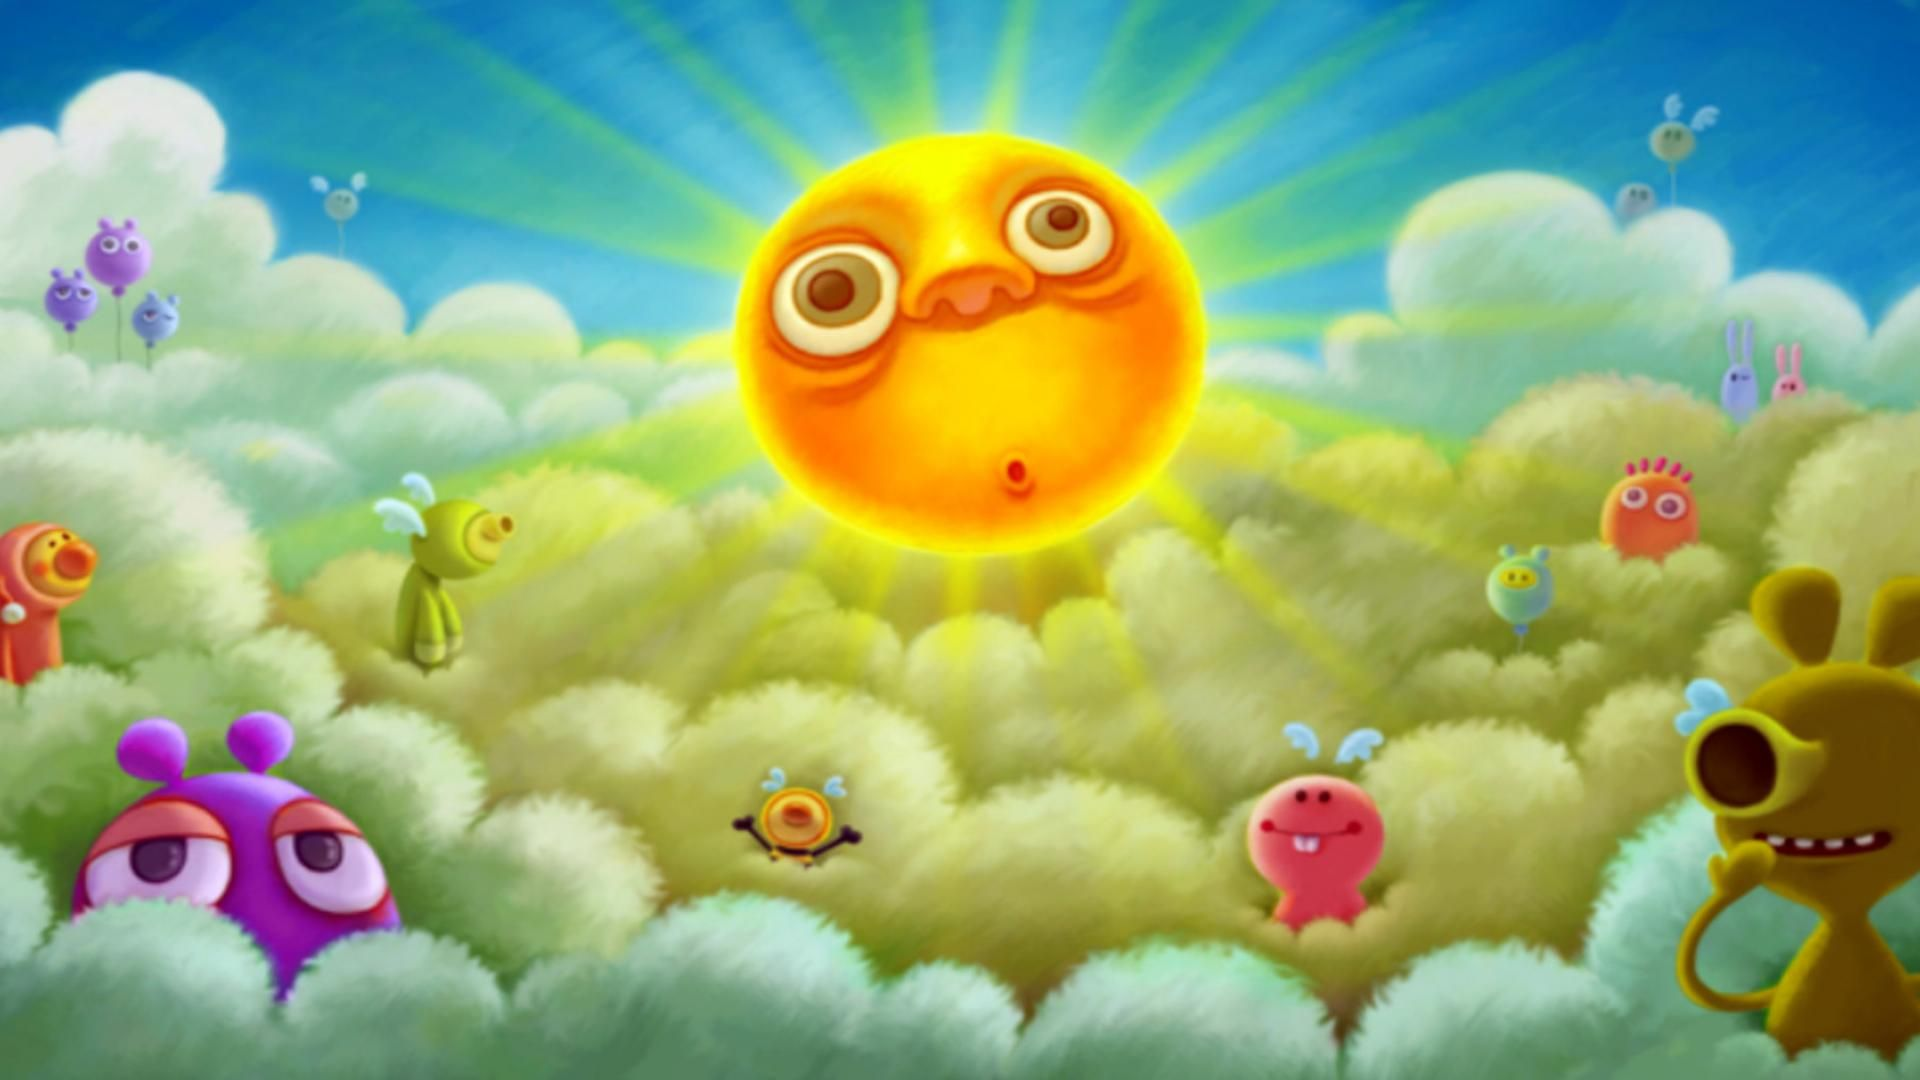 Free Desktop Wallpapers And Backgrounds With The Sun Is Rising, Cartoon,  Cute, Summer, Sun. Wallpapers No.